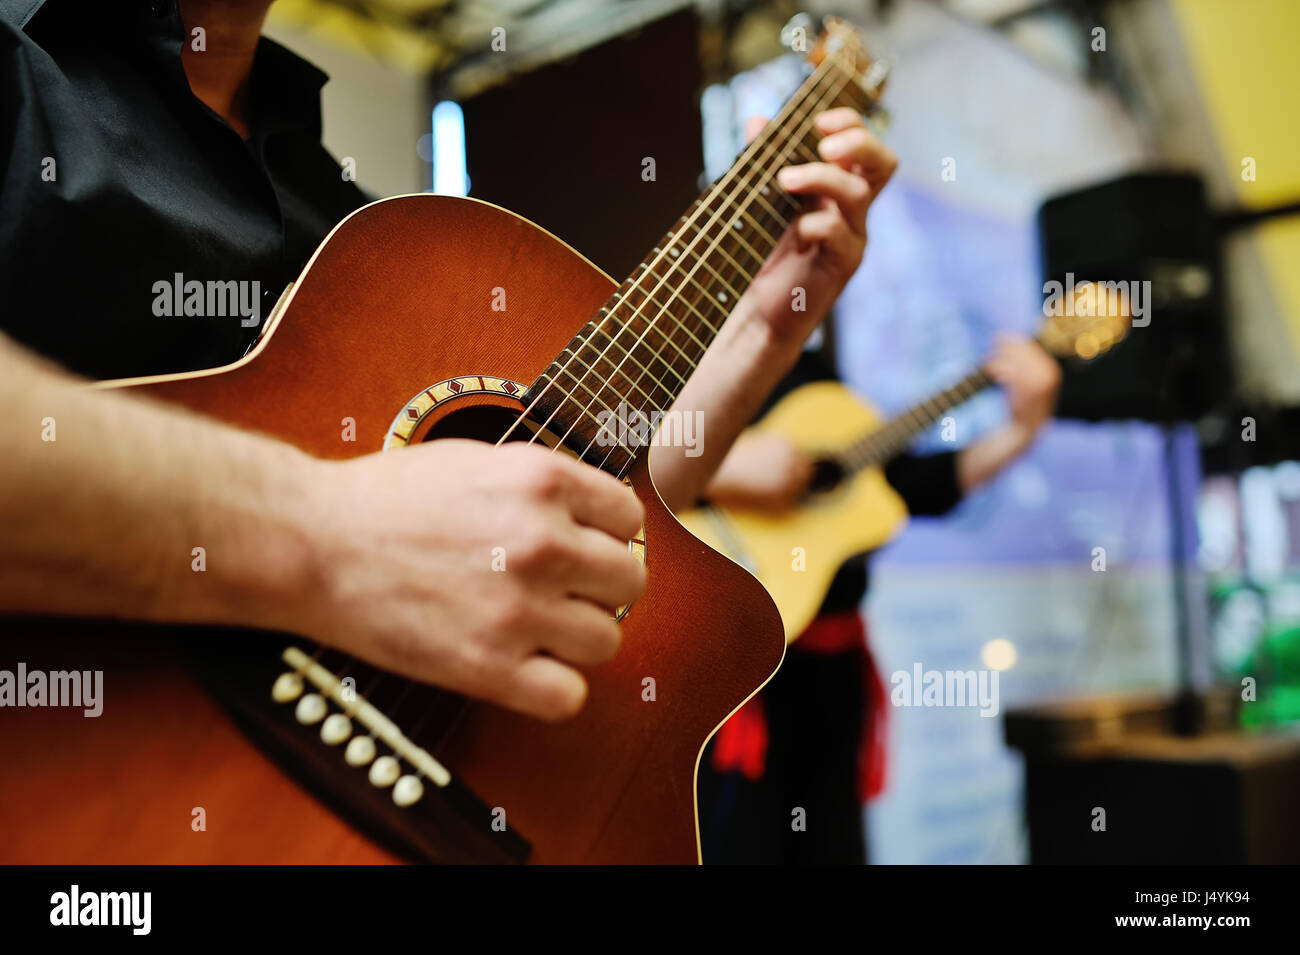 two musicians playing guitars - Stock Image